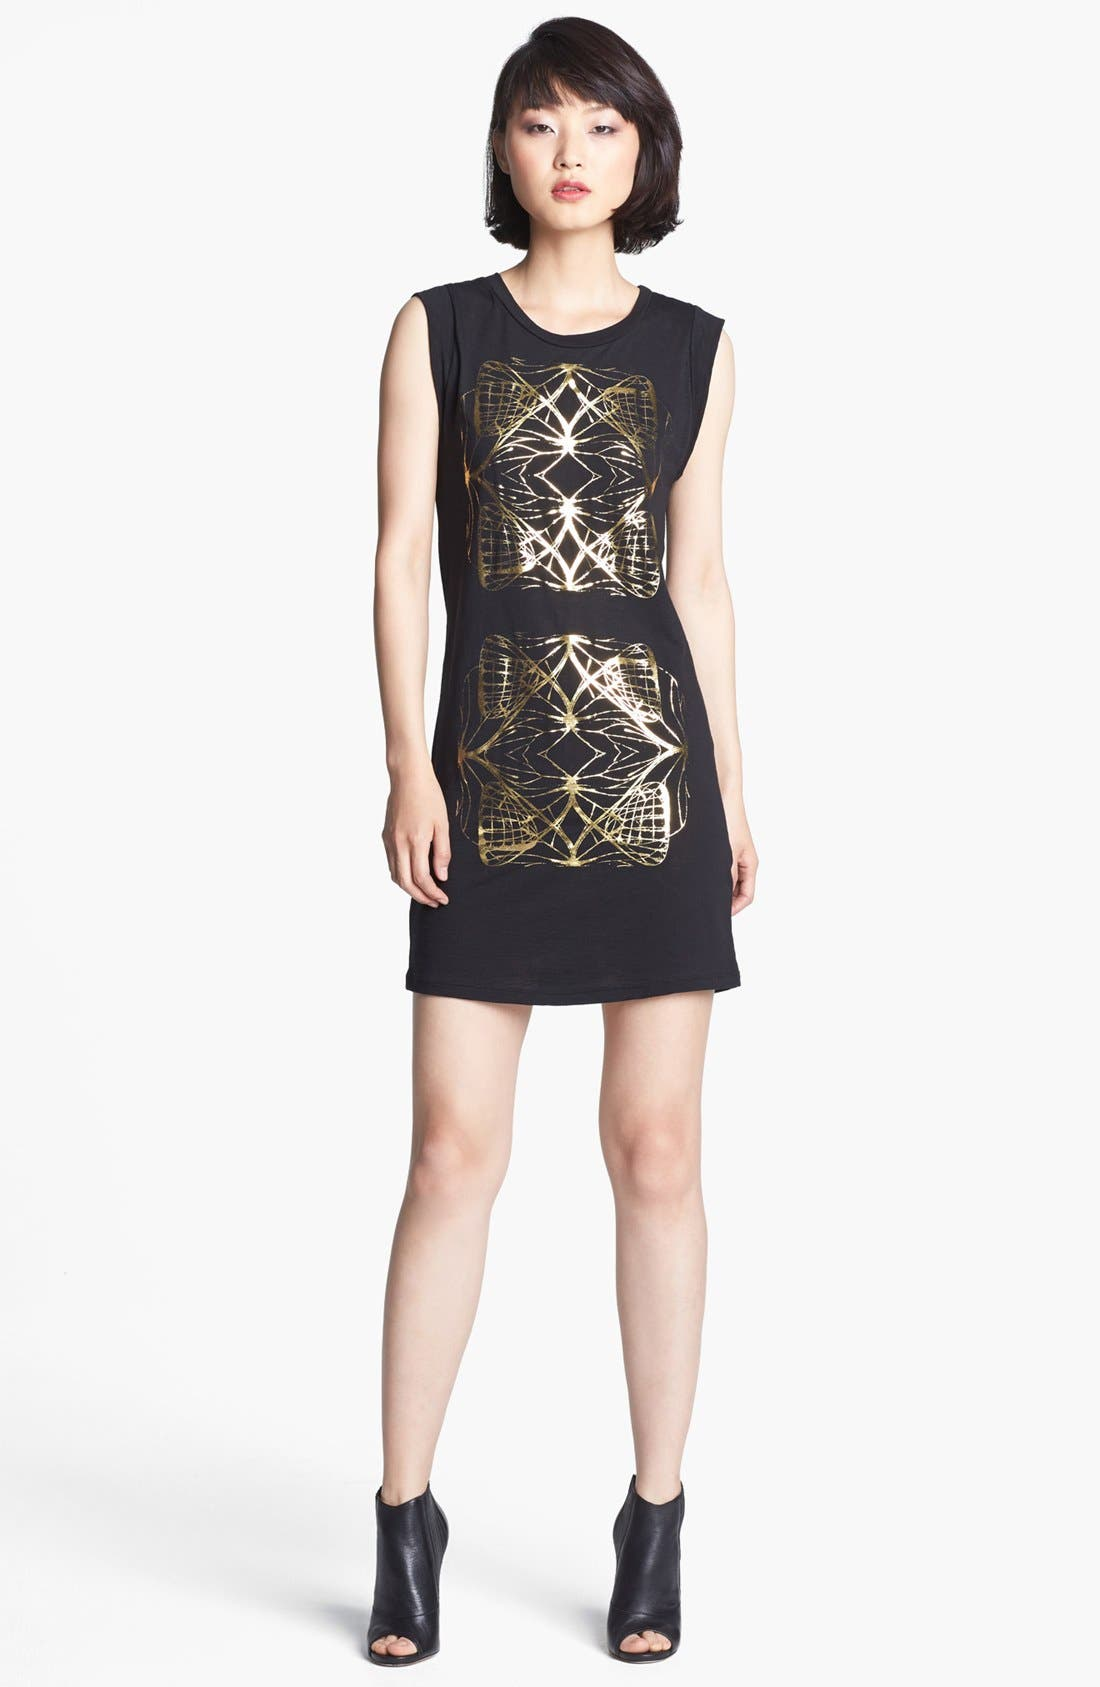 Main Image - Kelly Wearstler 'Diamond' Foiled Print Dress